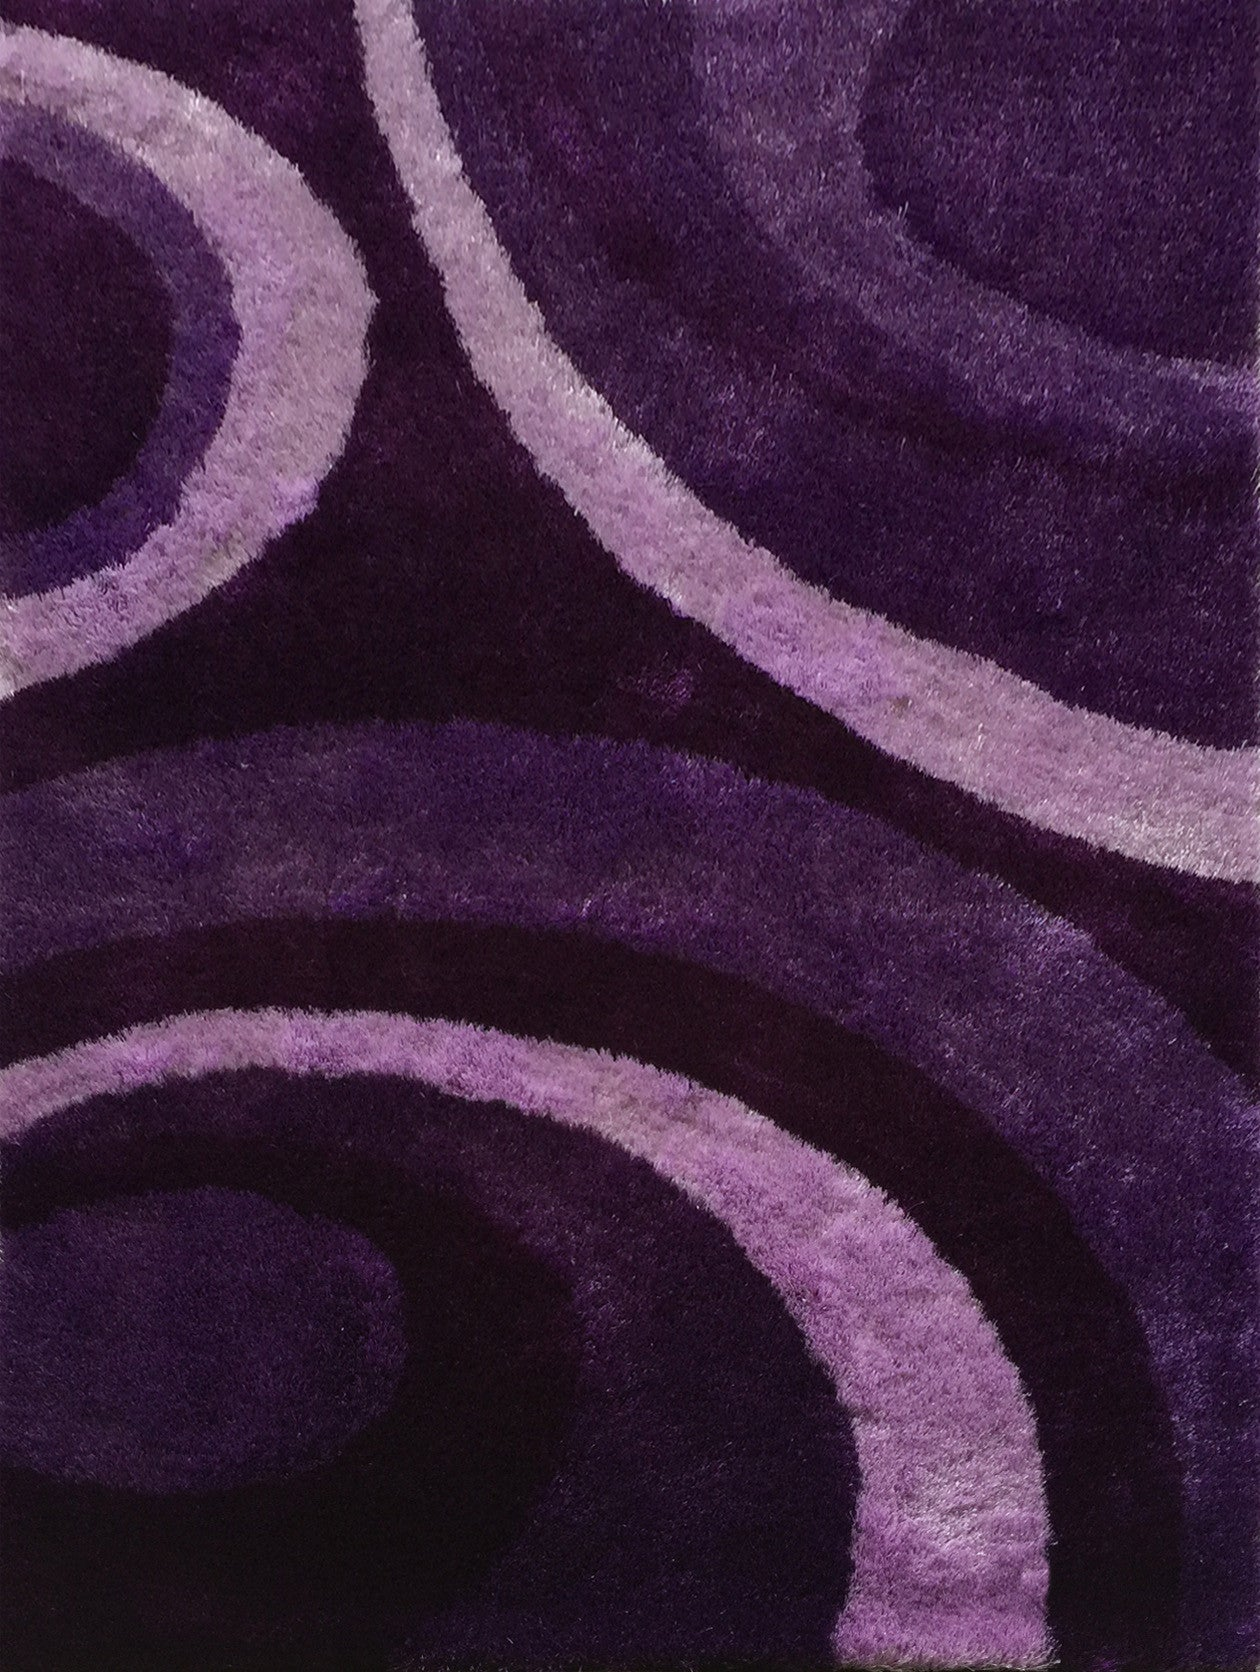 floral purple indoor bedroom shag area rug area rug rug addiction rug addiction